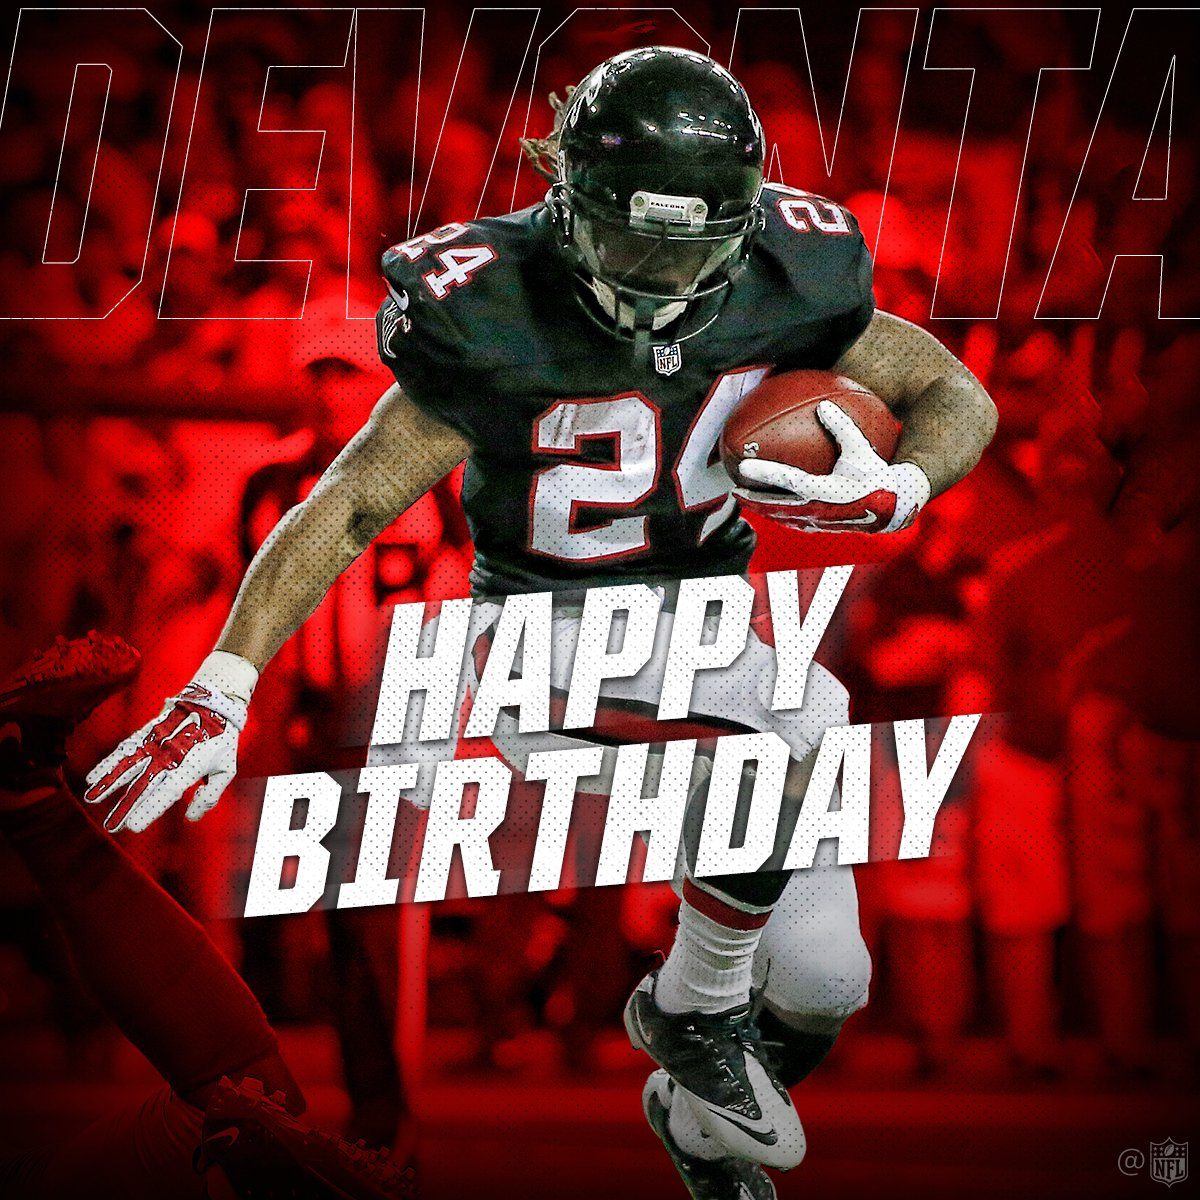 Join us in wishing @devontafreeman a happy birthday! #HBDFreeman https://t.co/oNfKeA9iV2